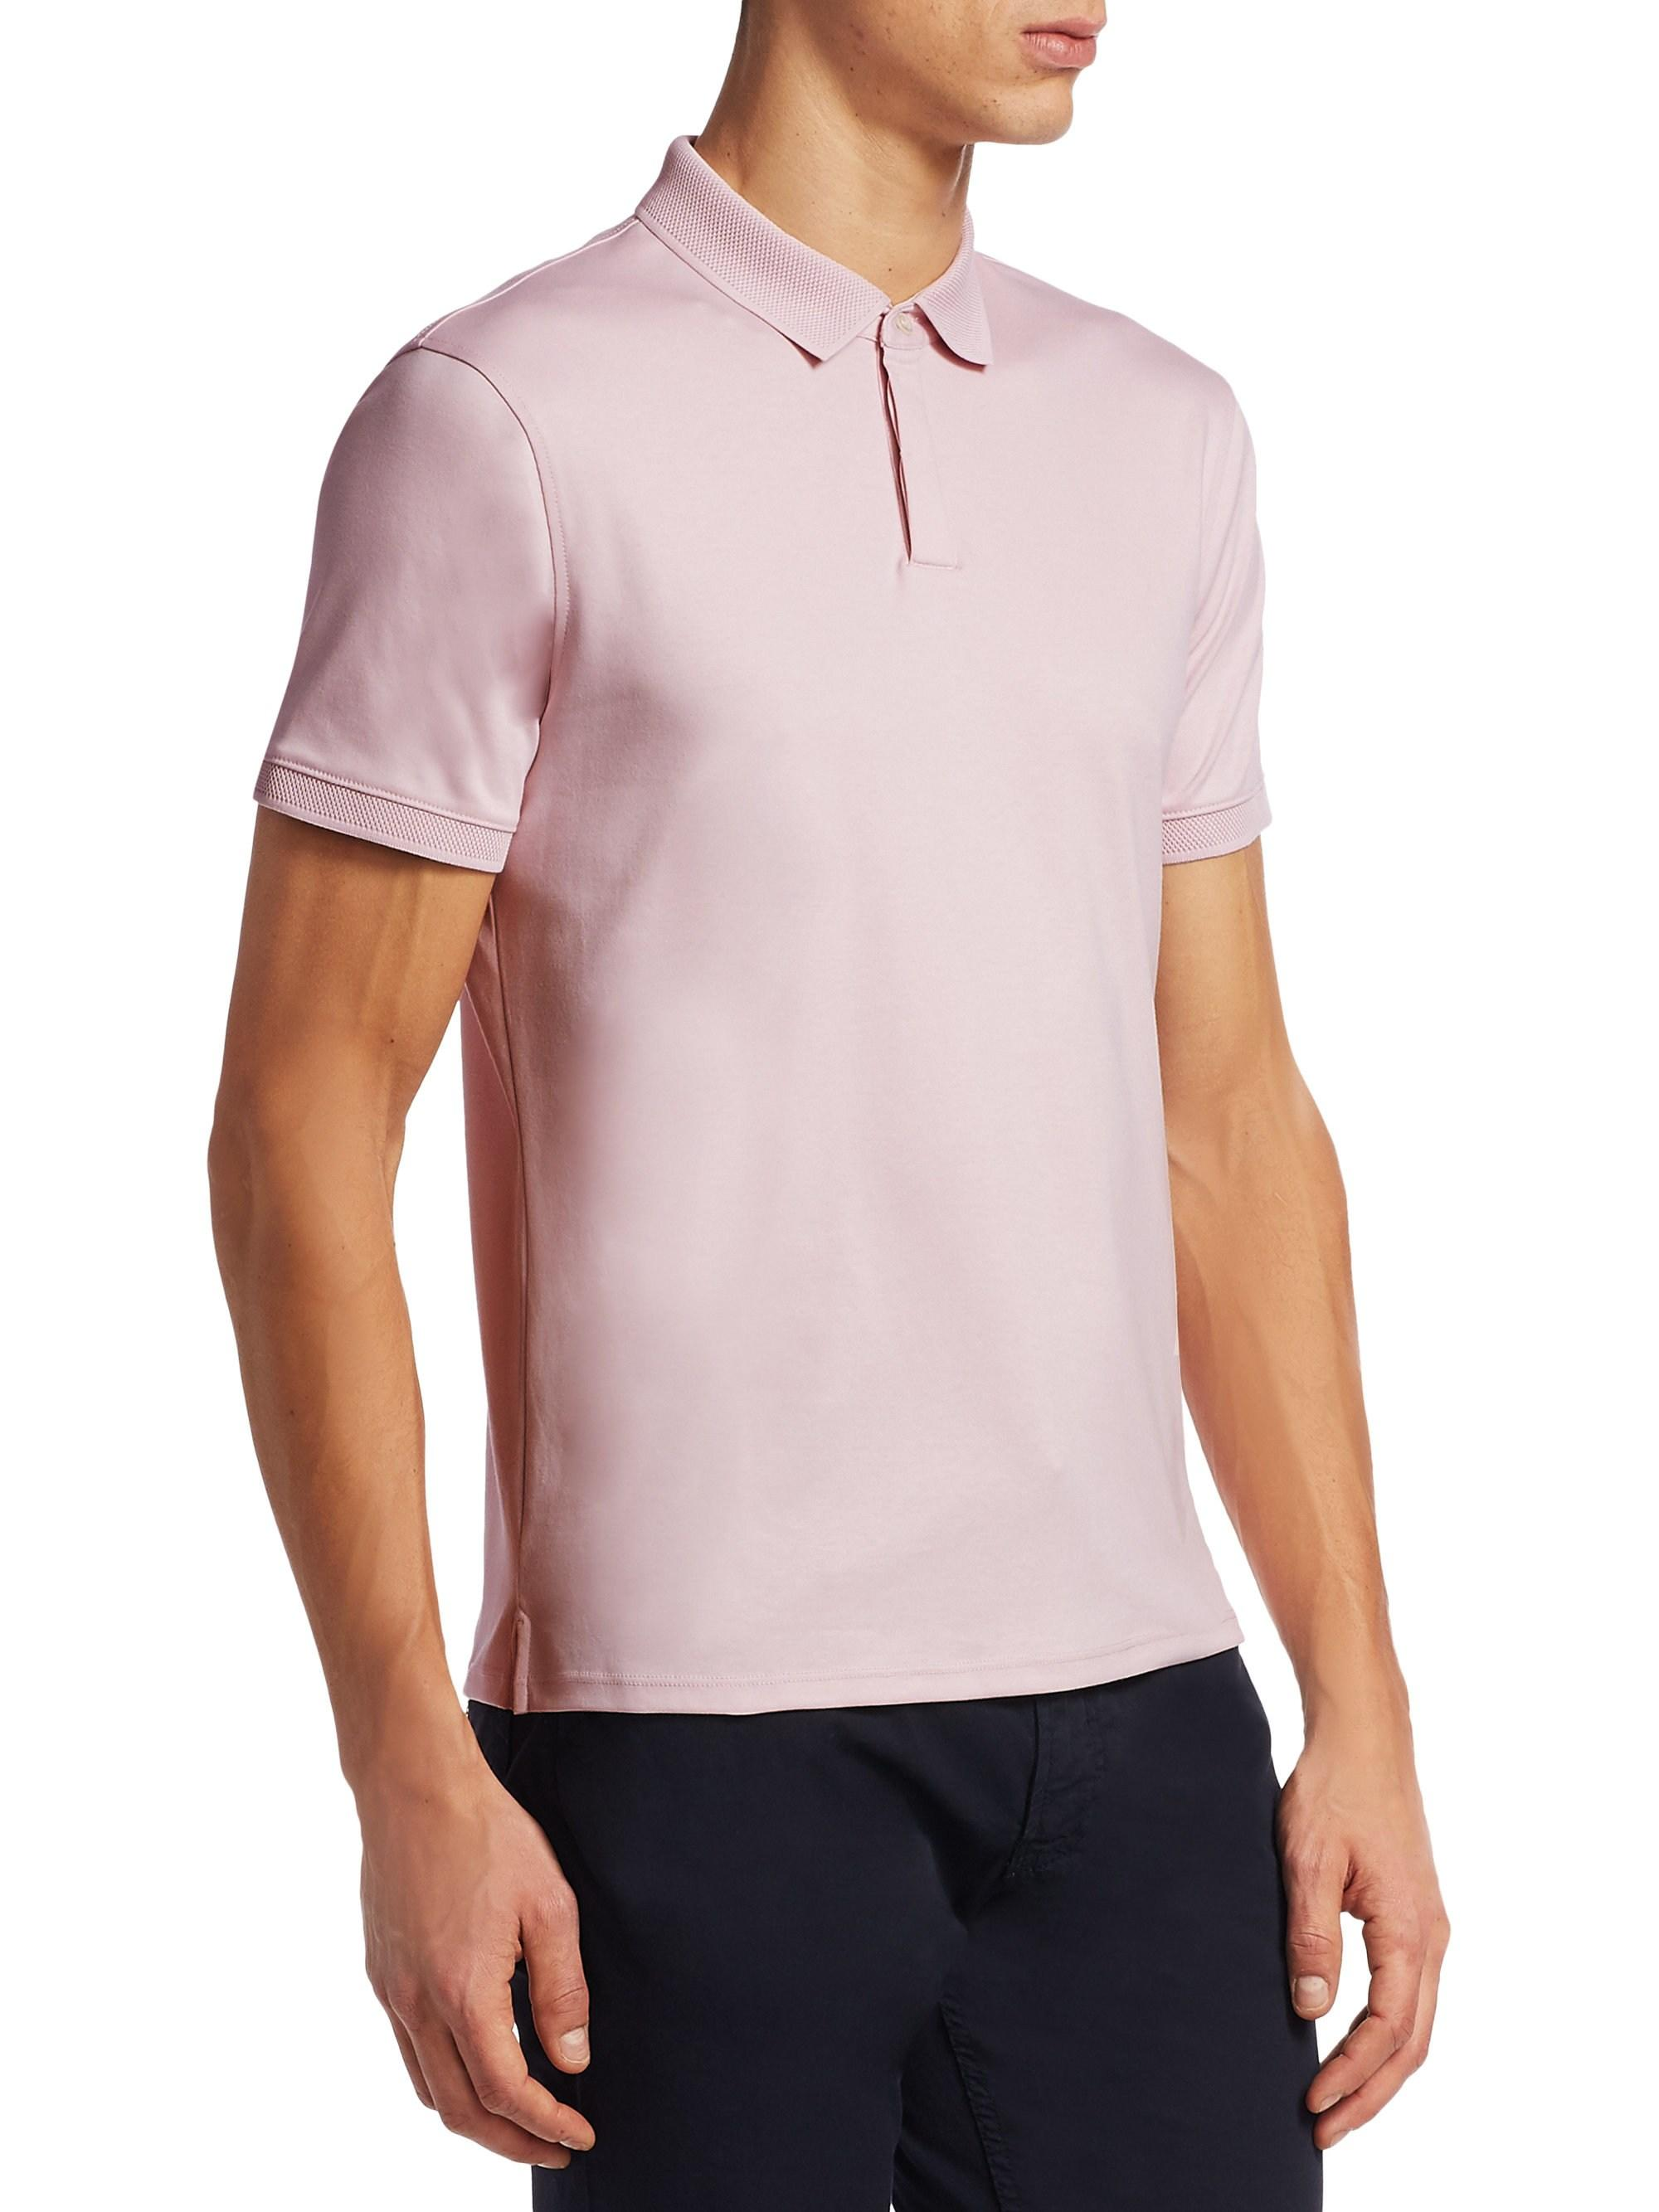 d1cf1799 Lyst - Emporio Armani Men's Pique Polo Shirt - Pink - Size Xxxl in Pink for  Men